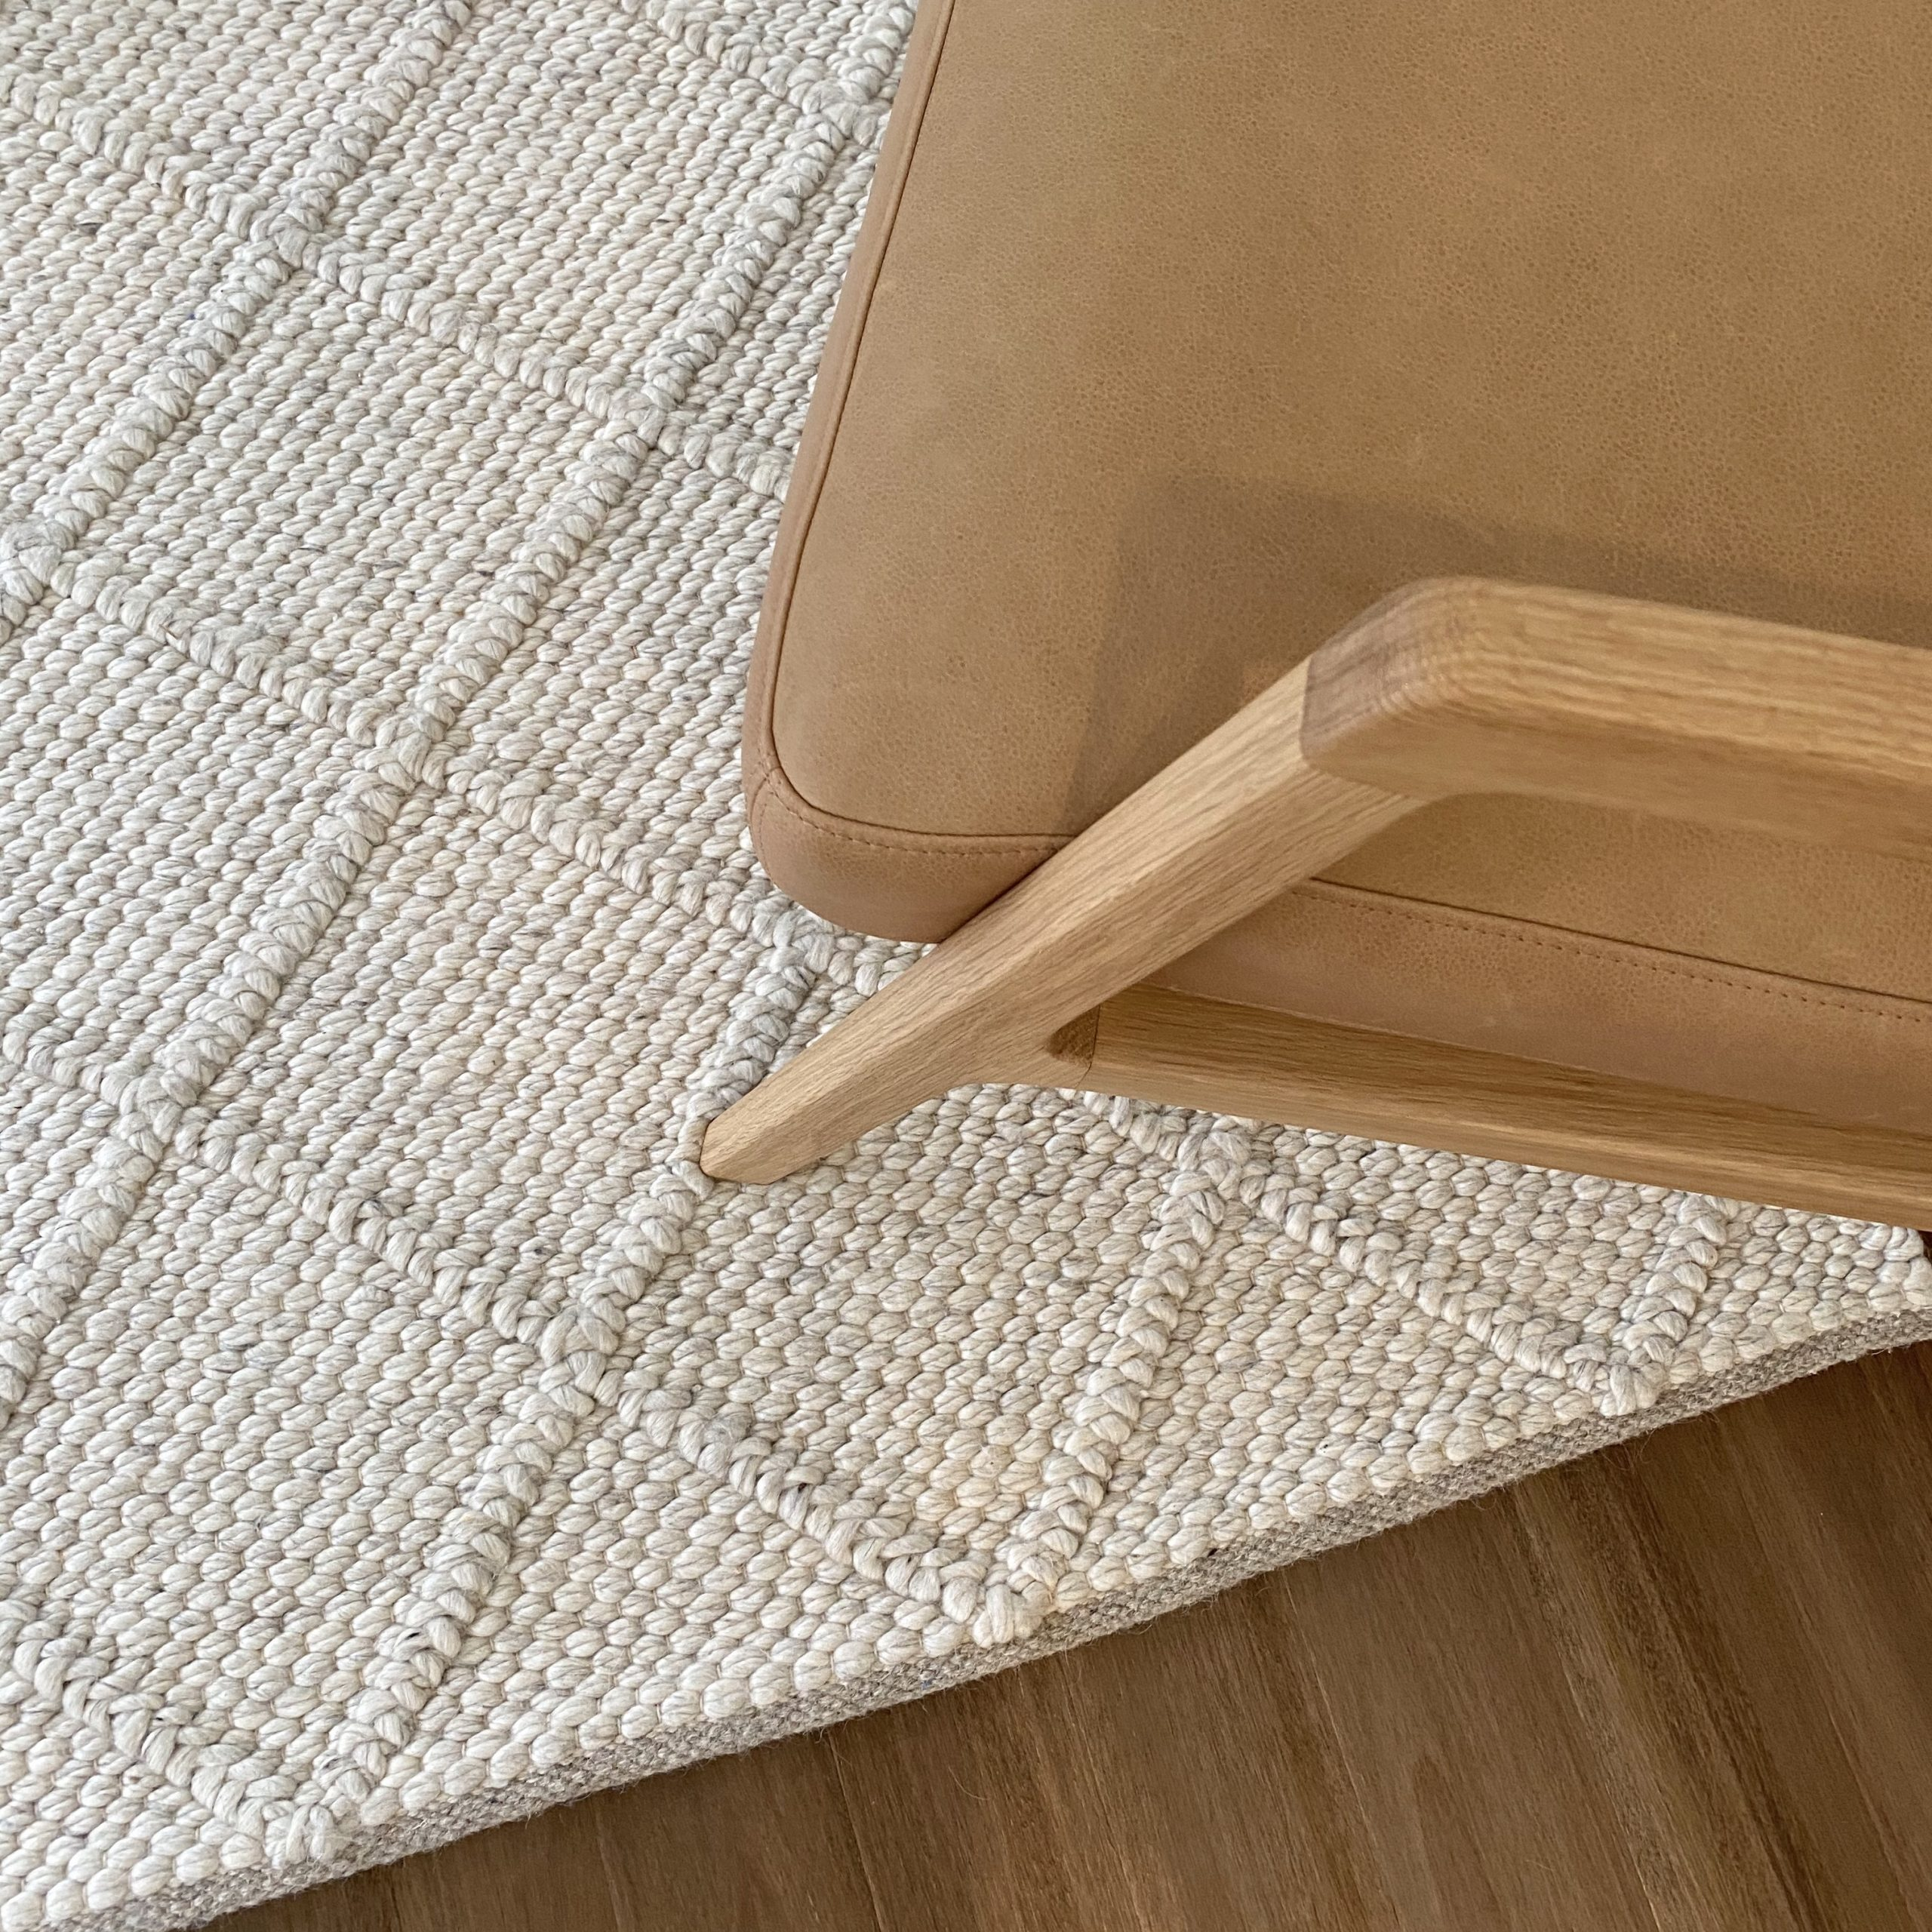 McMillan Design - Cable St Project - Floor Rug